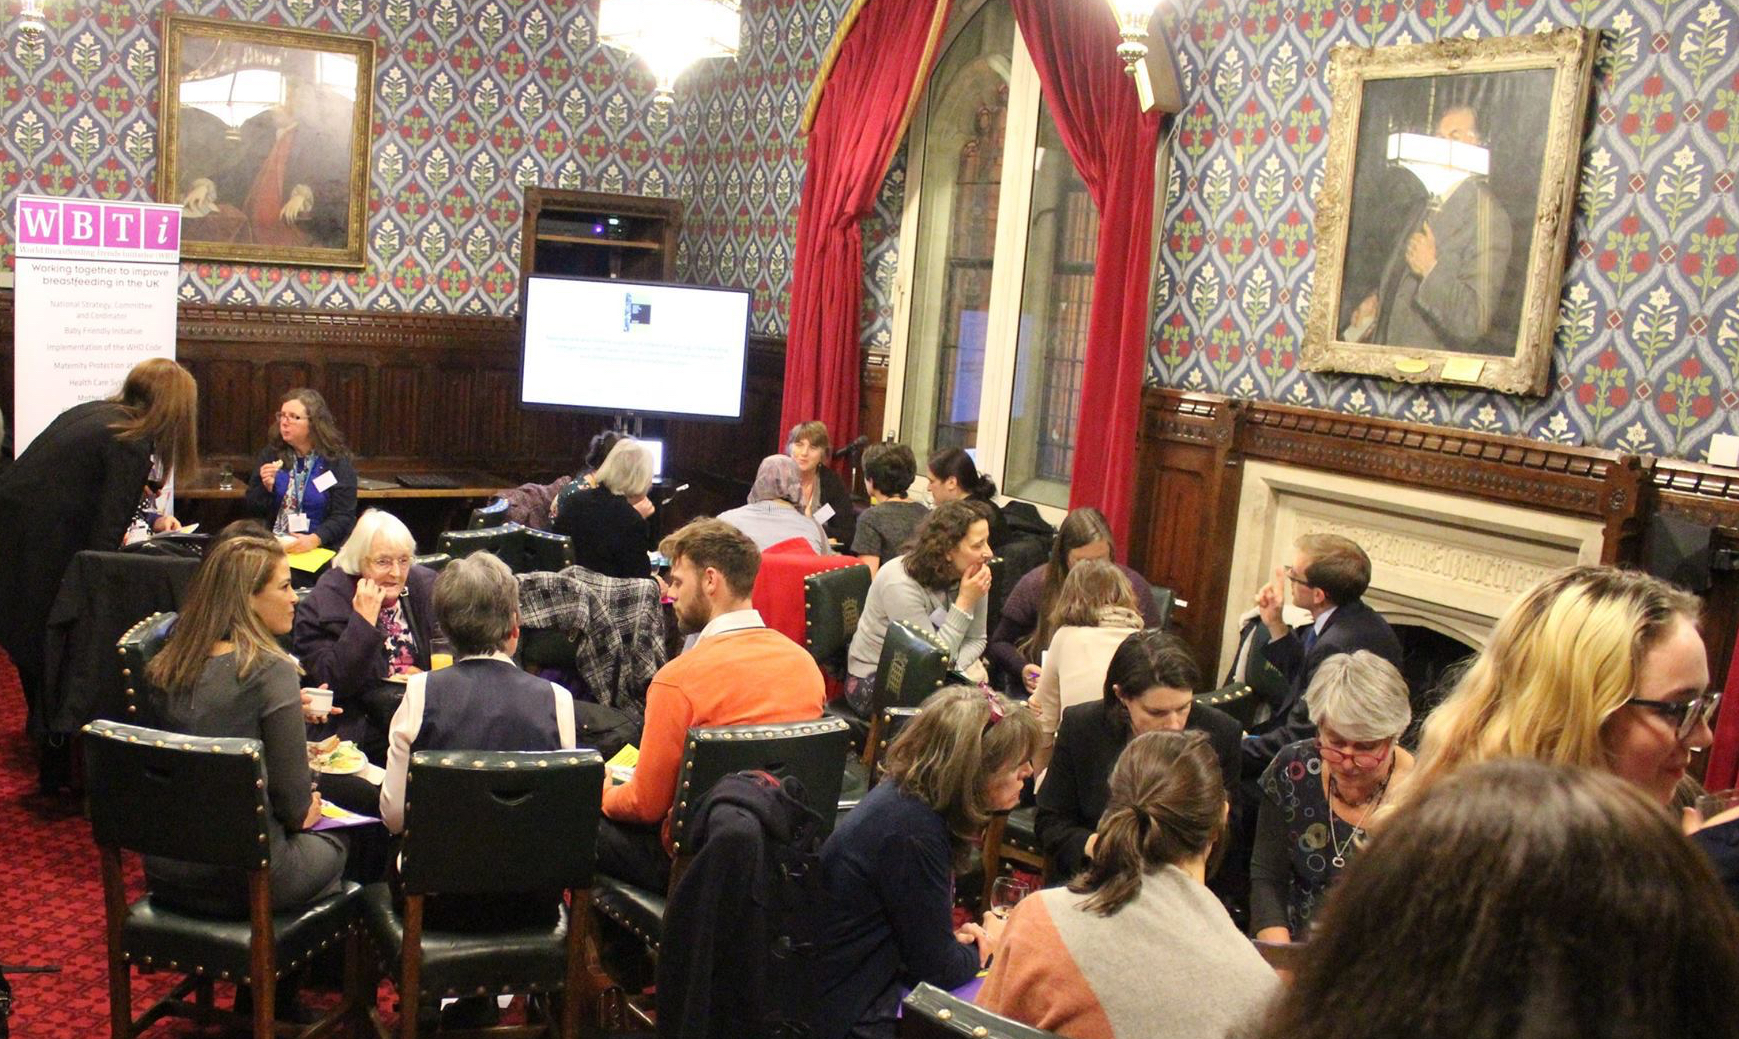 Protecting Infants and Young Children: WBTi Forum on Planning for Emergencies in the UK